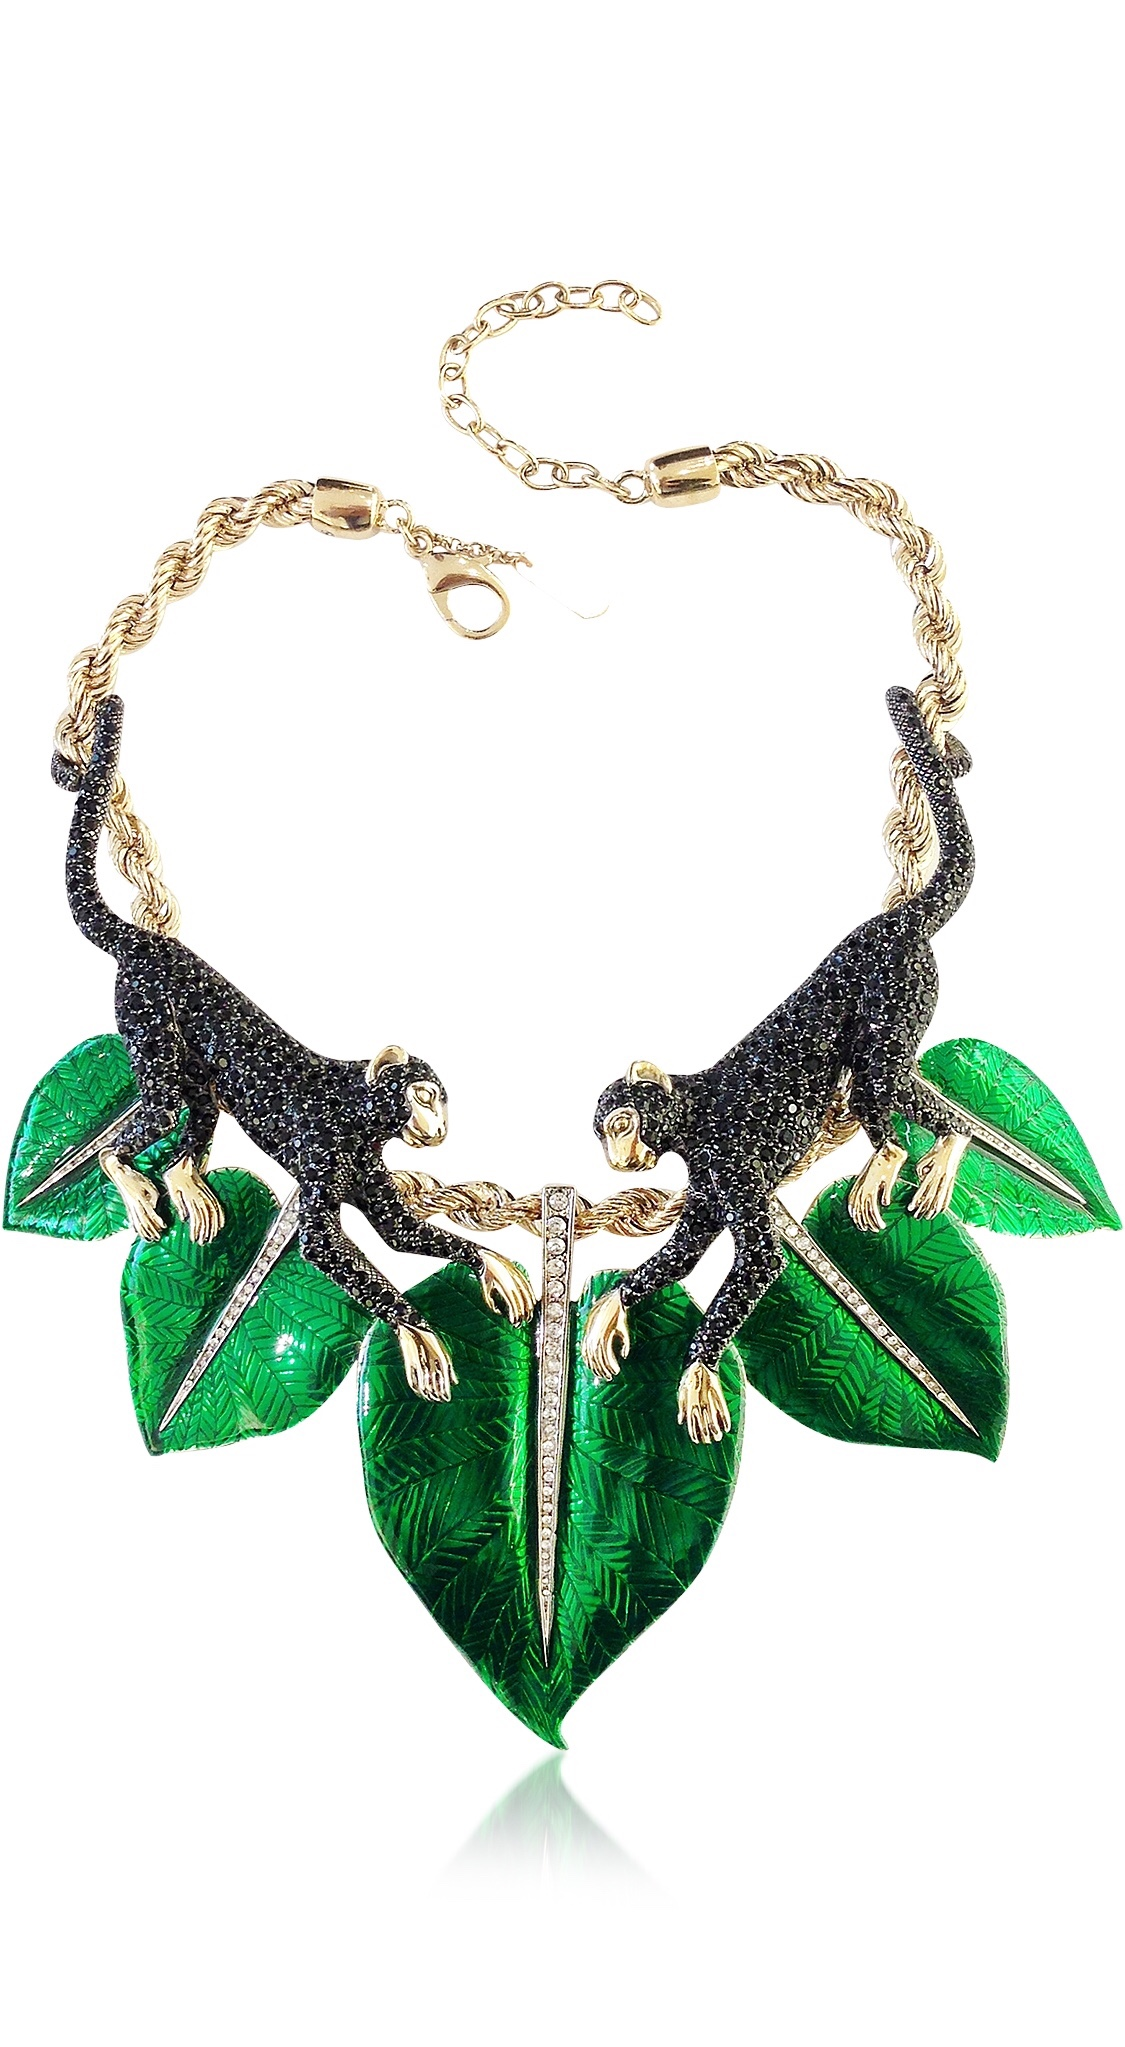 {Spring Statement Jewelry 2015} Animal Kingdom Golden and Enamel Crystal Choker Necklace by ROBERTO CAVALLI